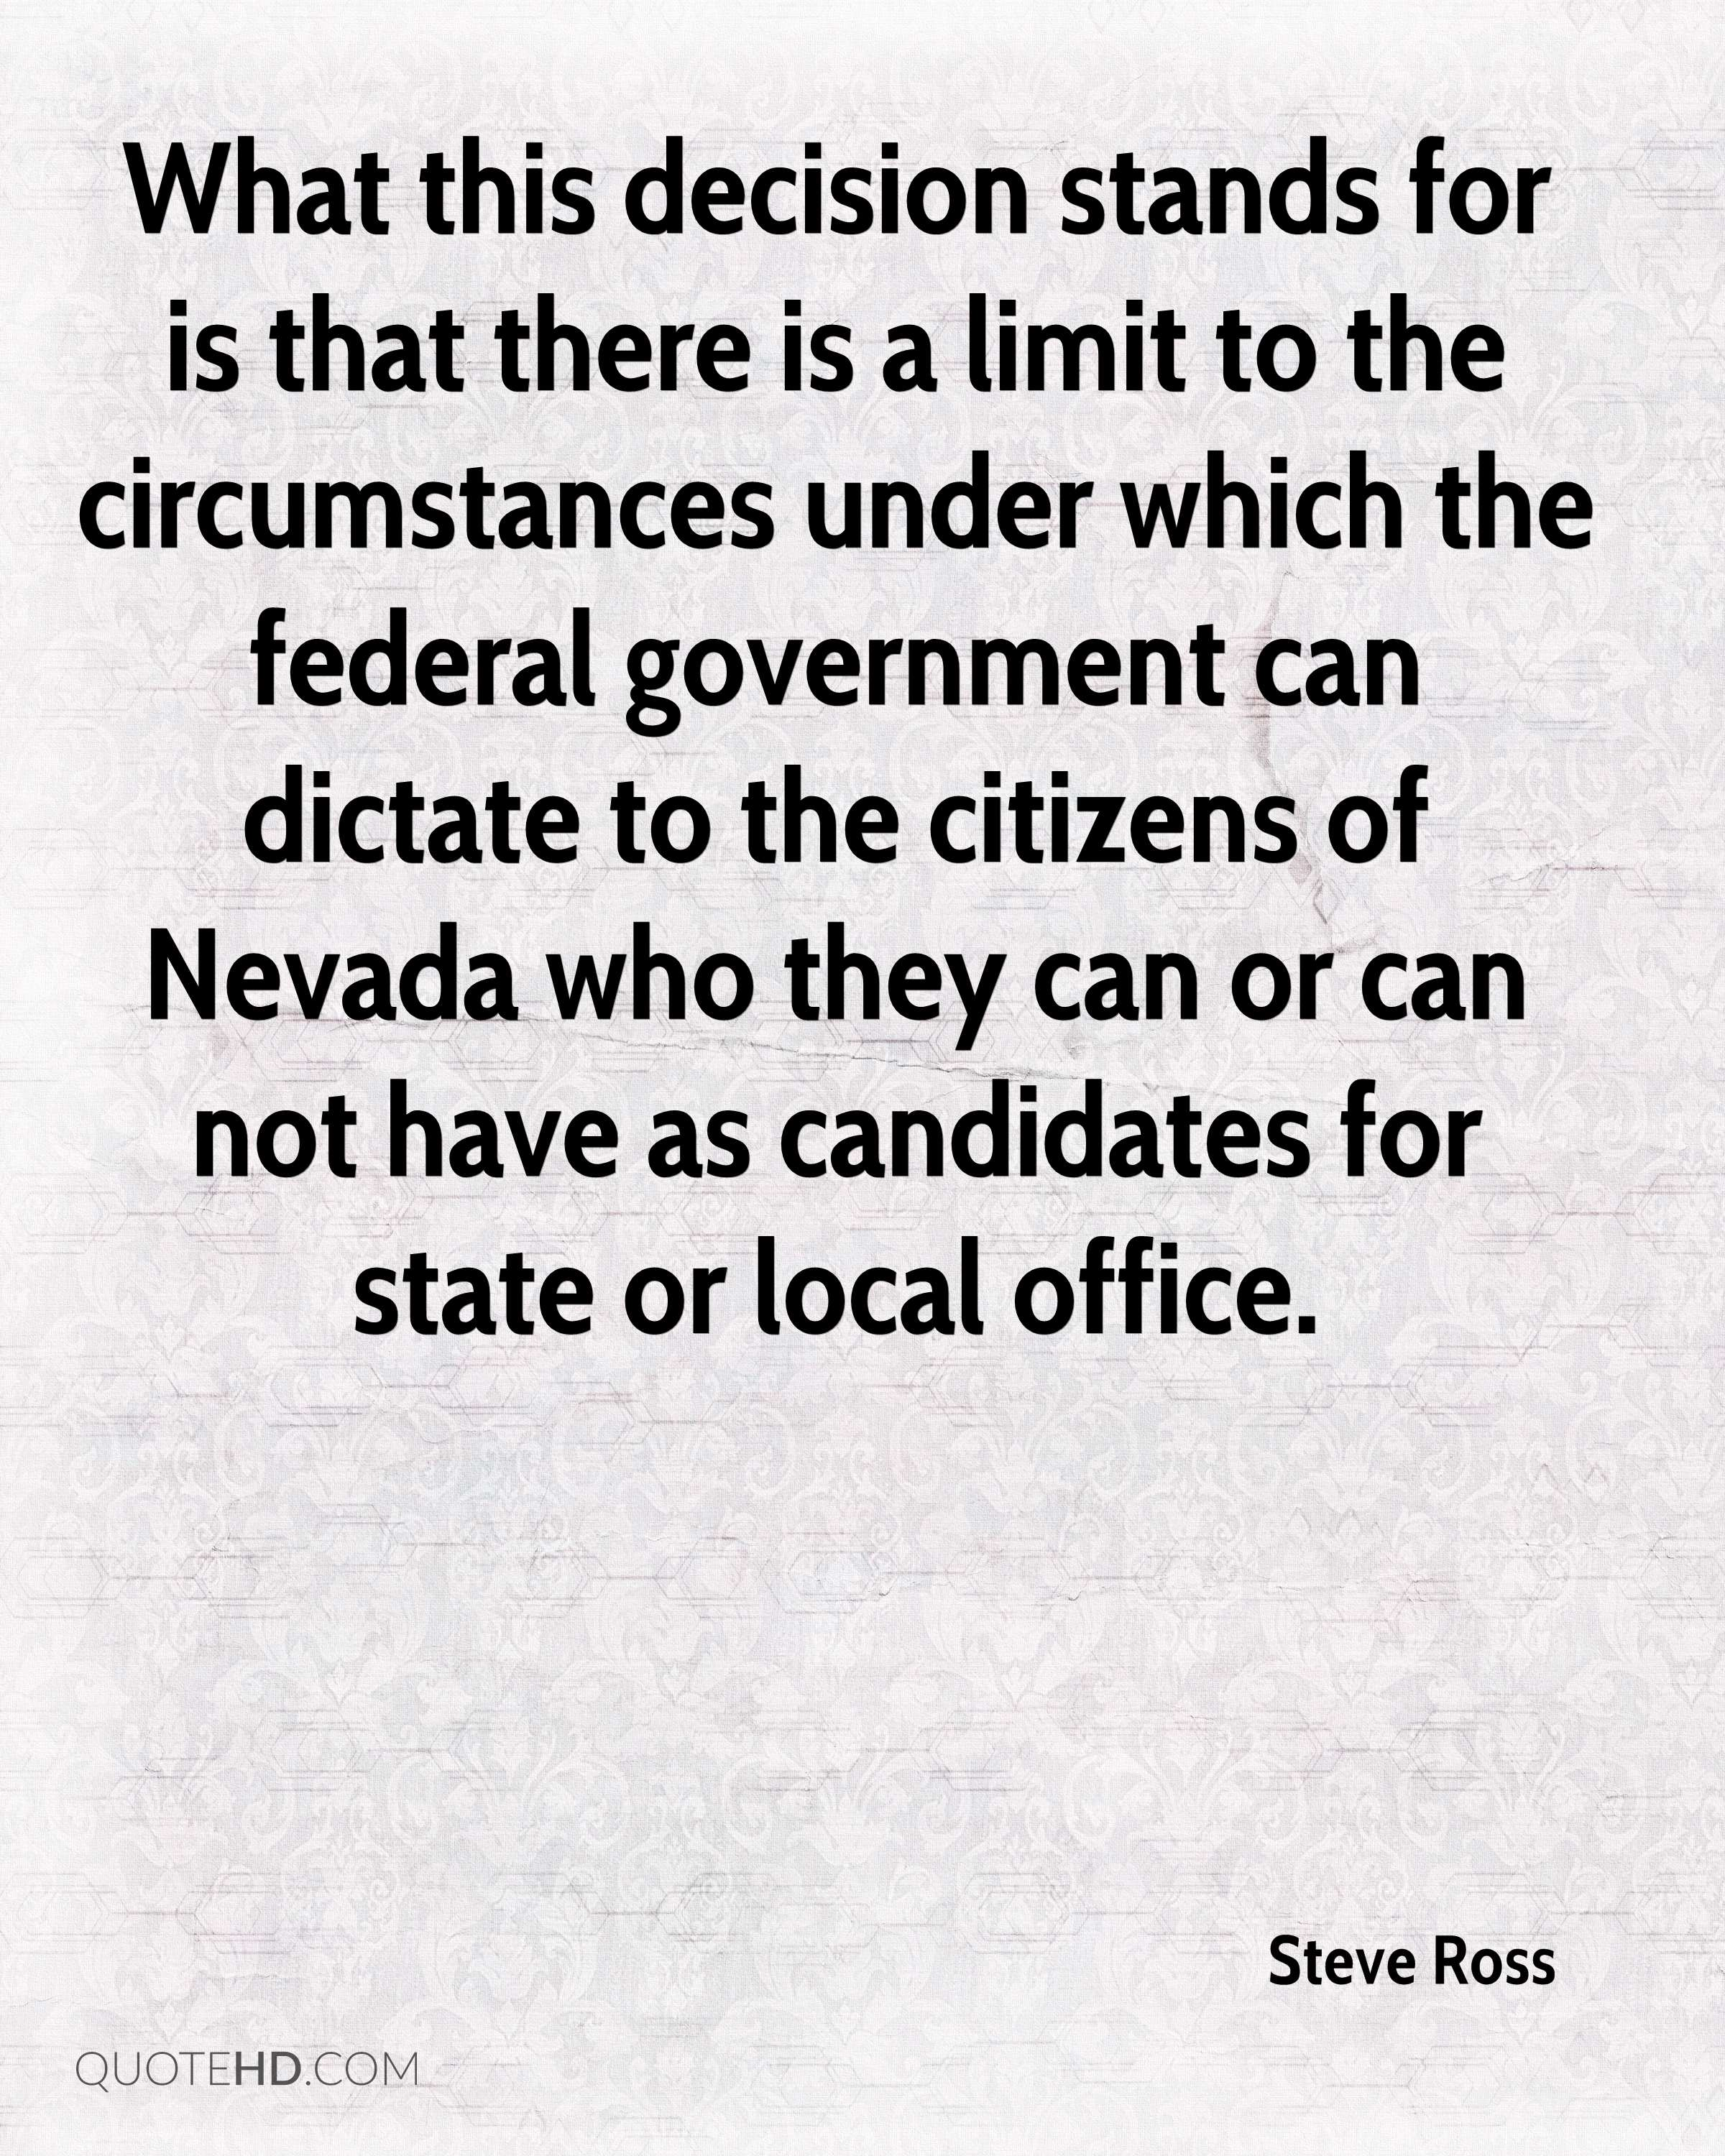 What this decision stands for is that there is a limit to the circumstances under which the federal government can dictate to the citizens of Nevada who they can or can not have as candidates for state or local office.